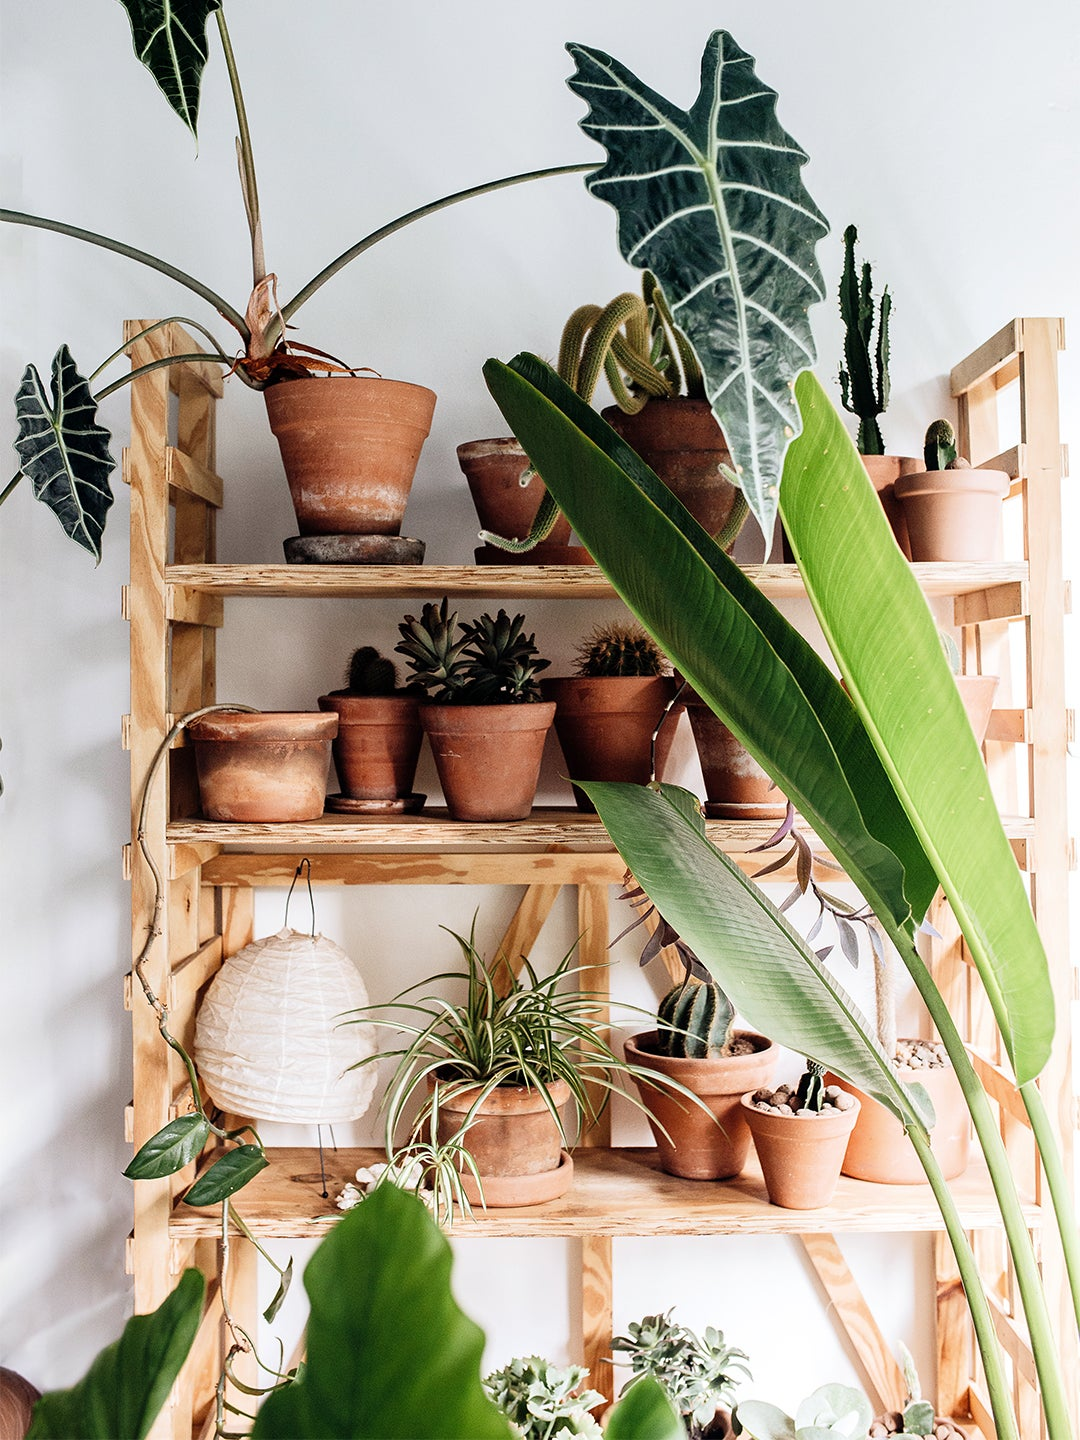 Shelf with assorted plants